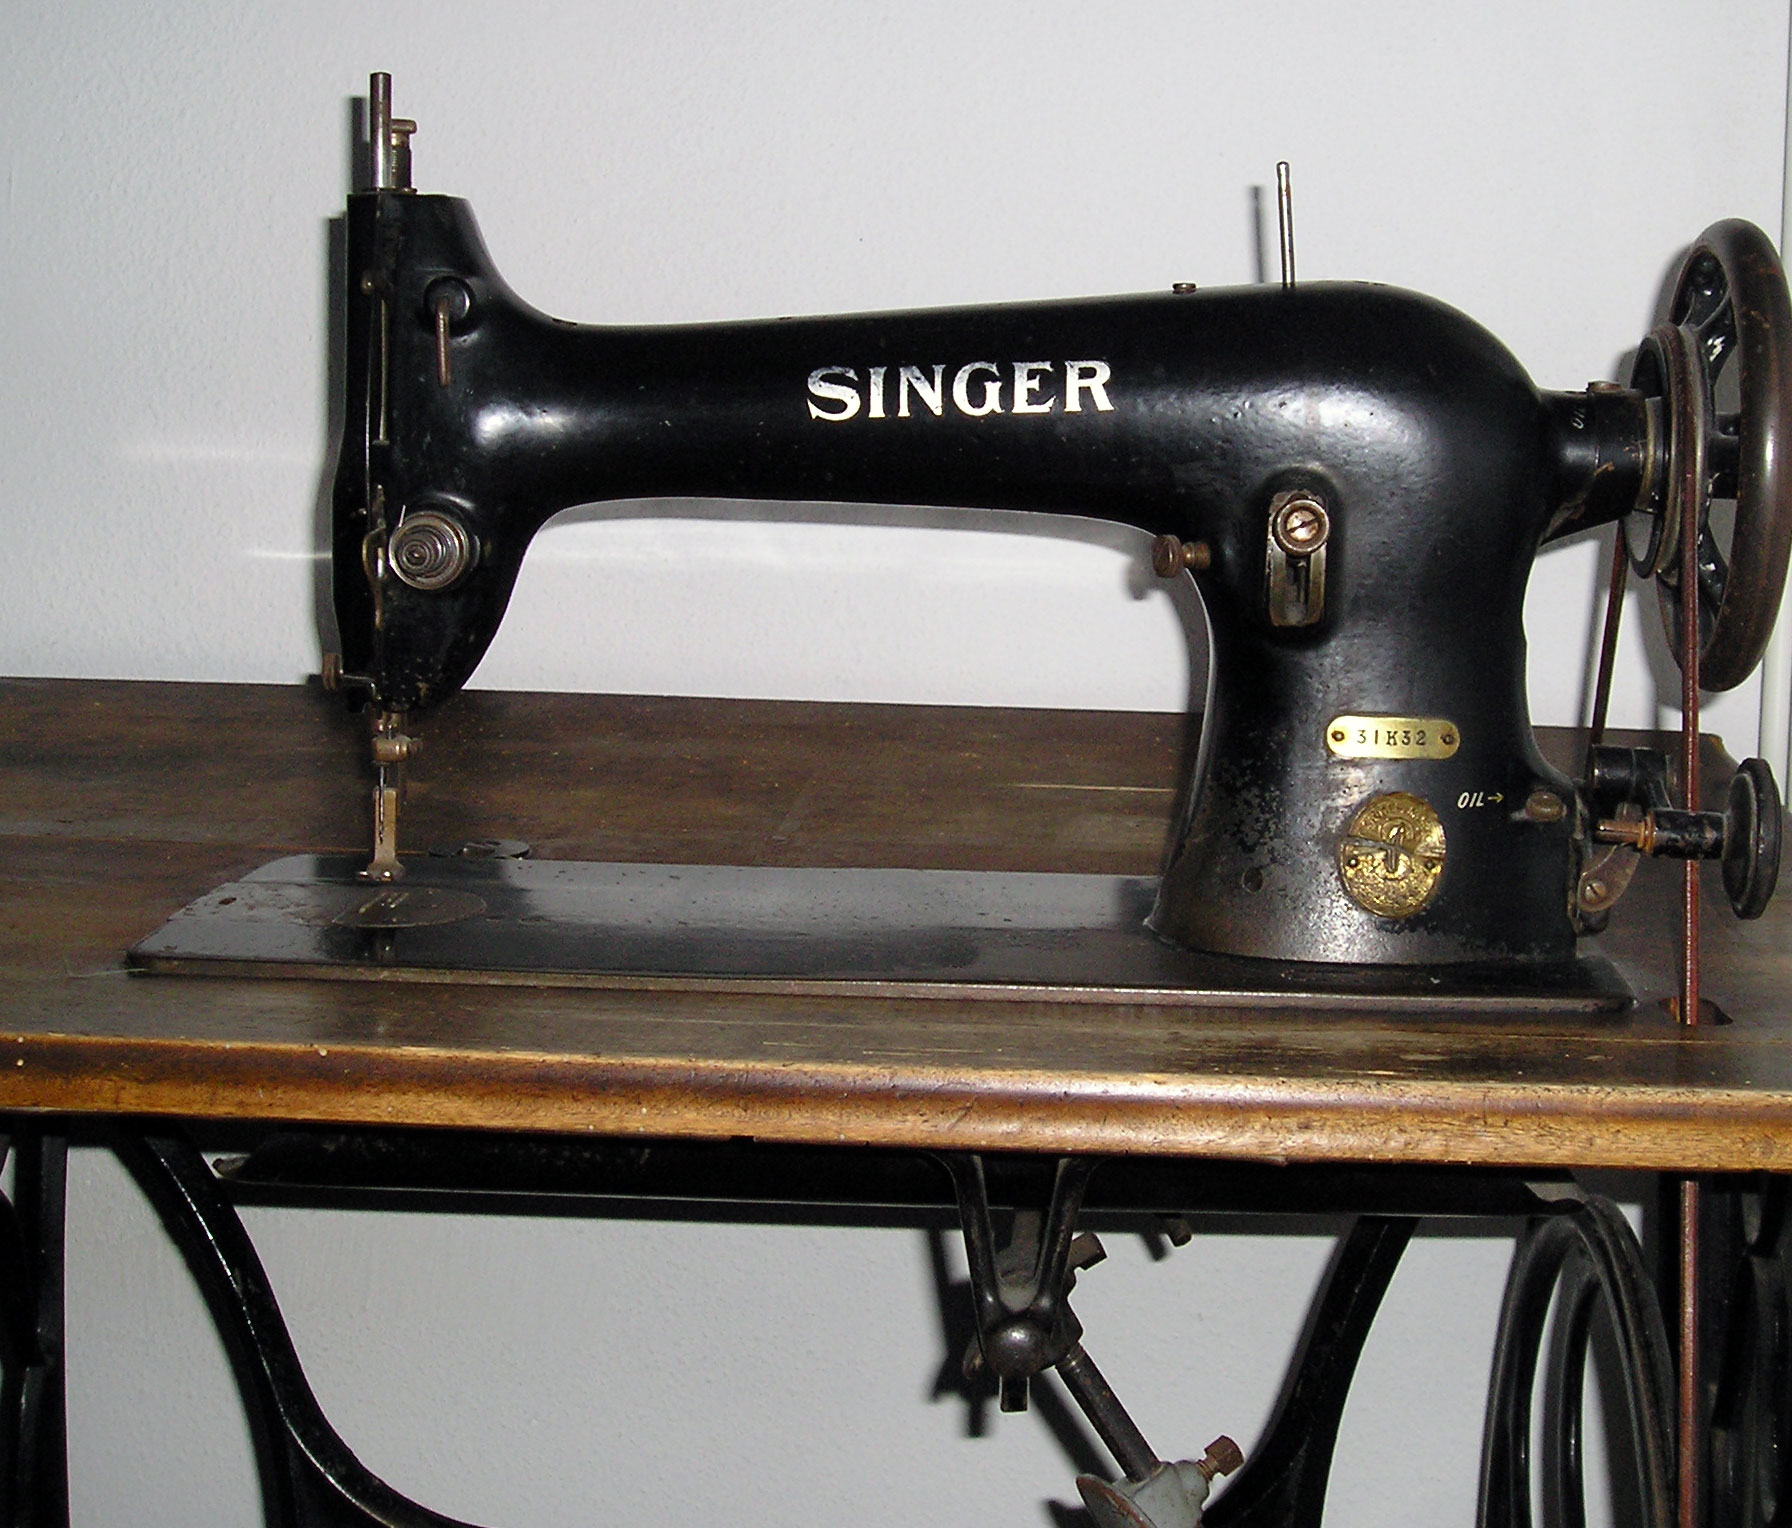 Industrial Sewing Machines Manuals Machine Net